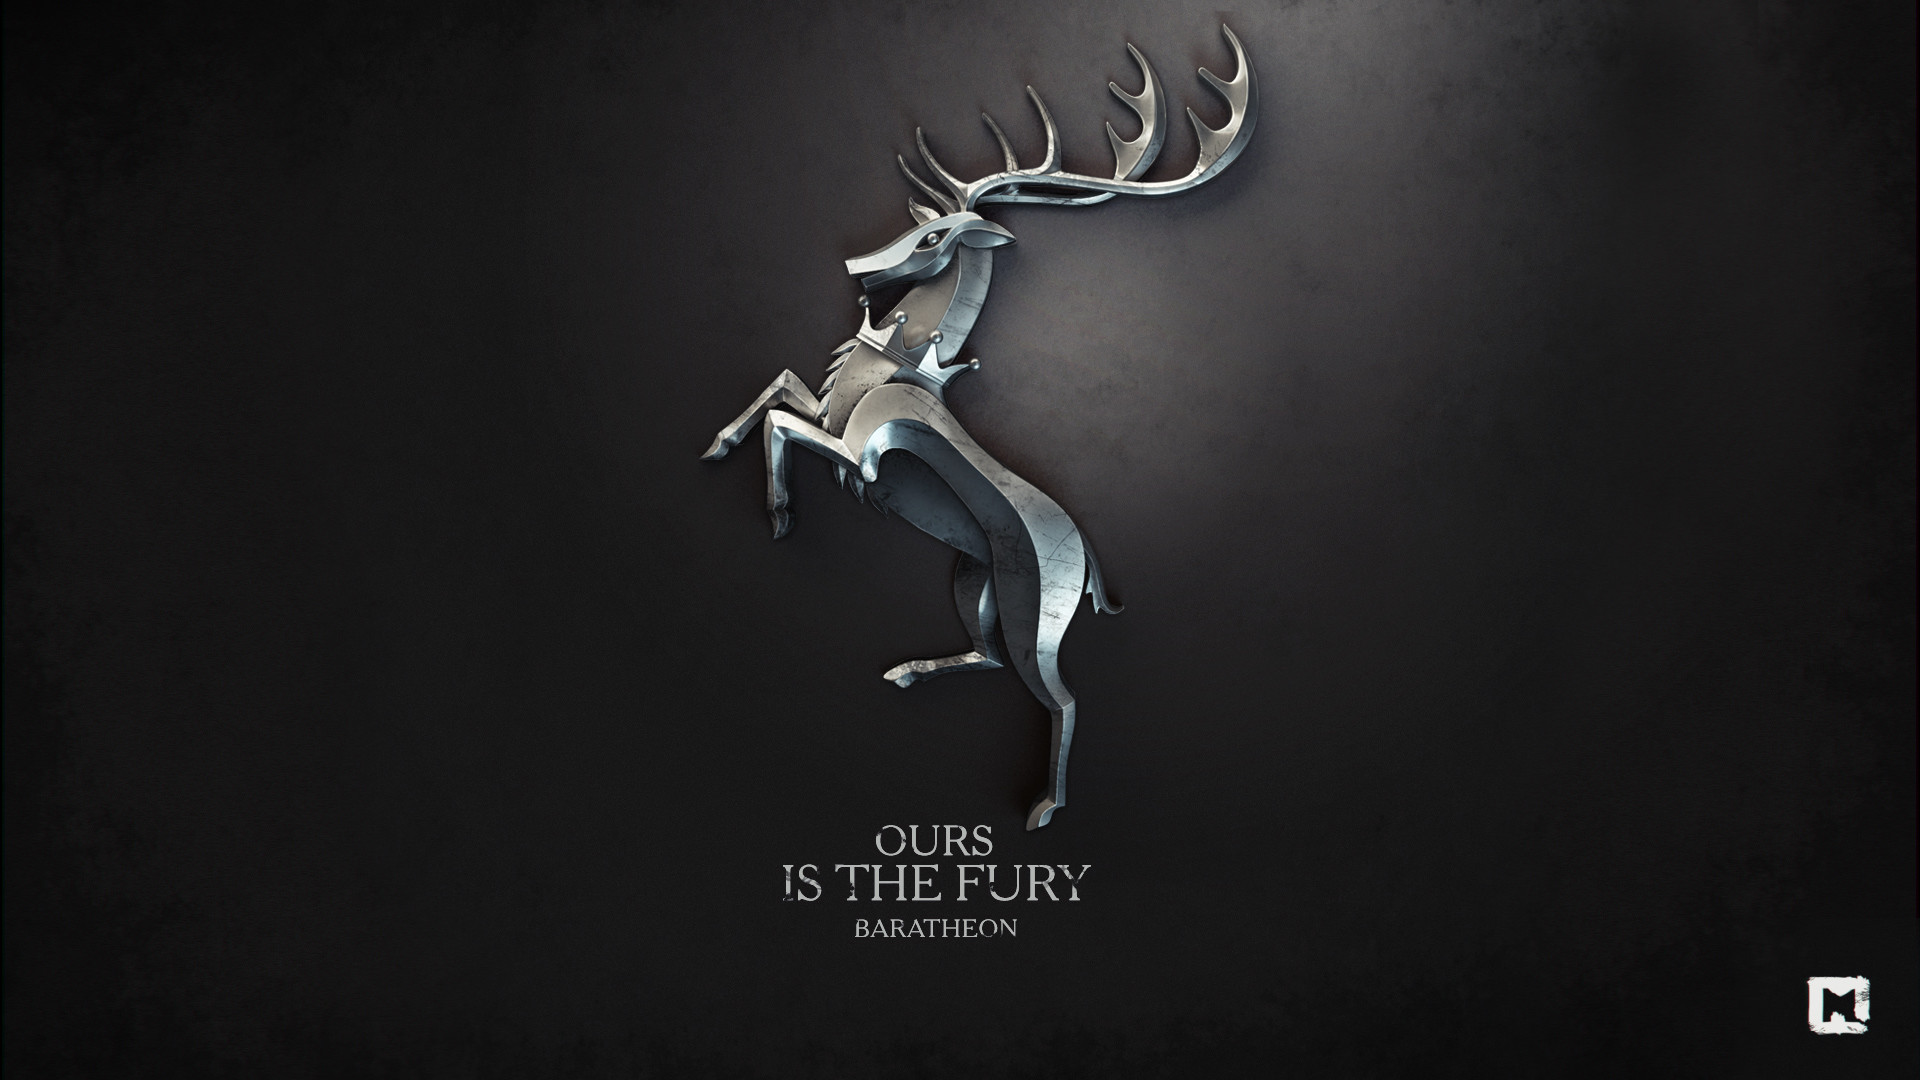 1920x1080 Fury Game of Thrones House Baratheon Melaamory / Wallpaper